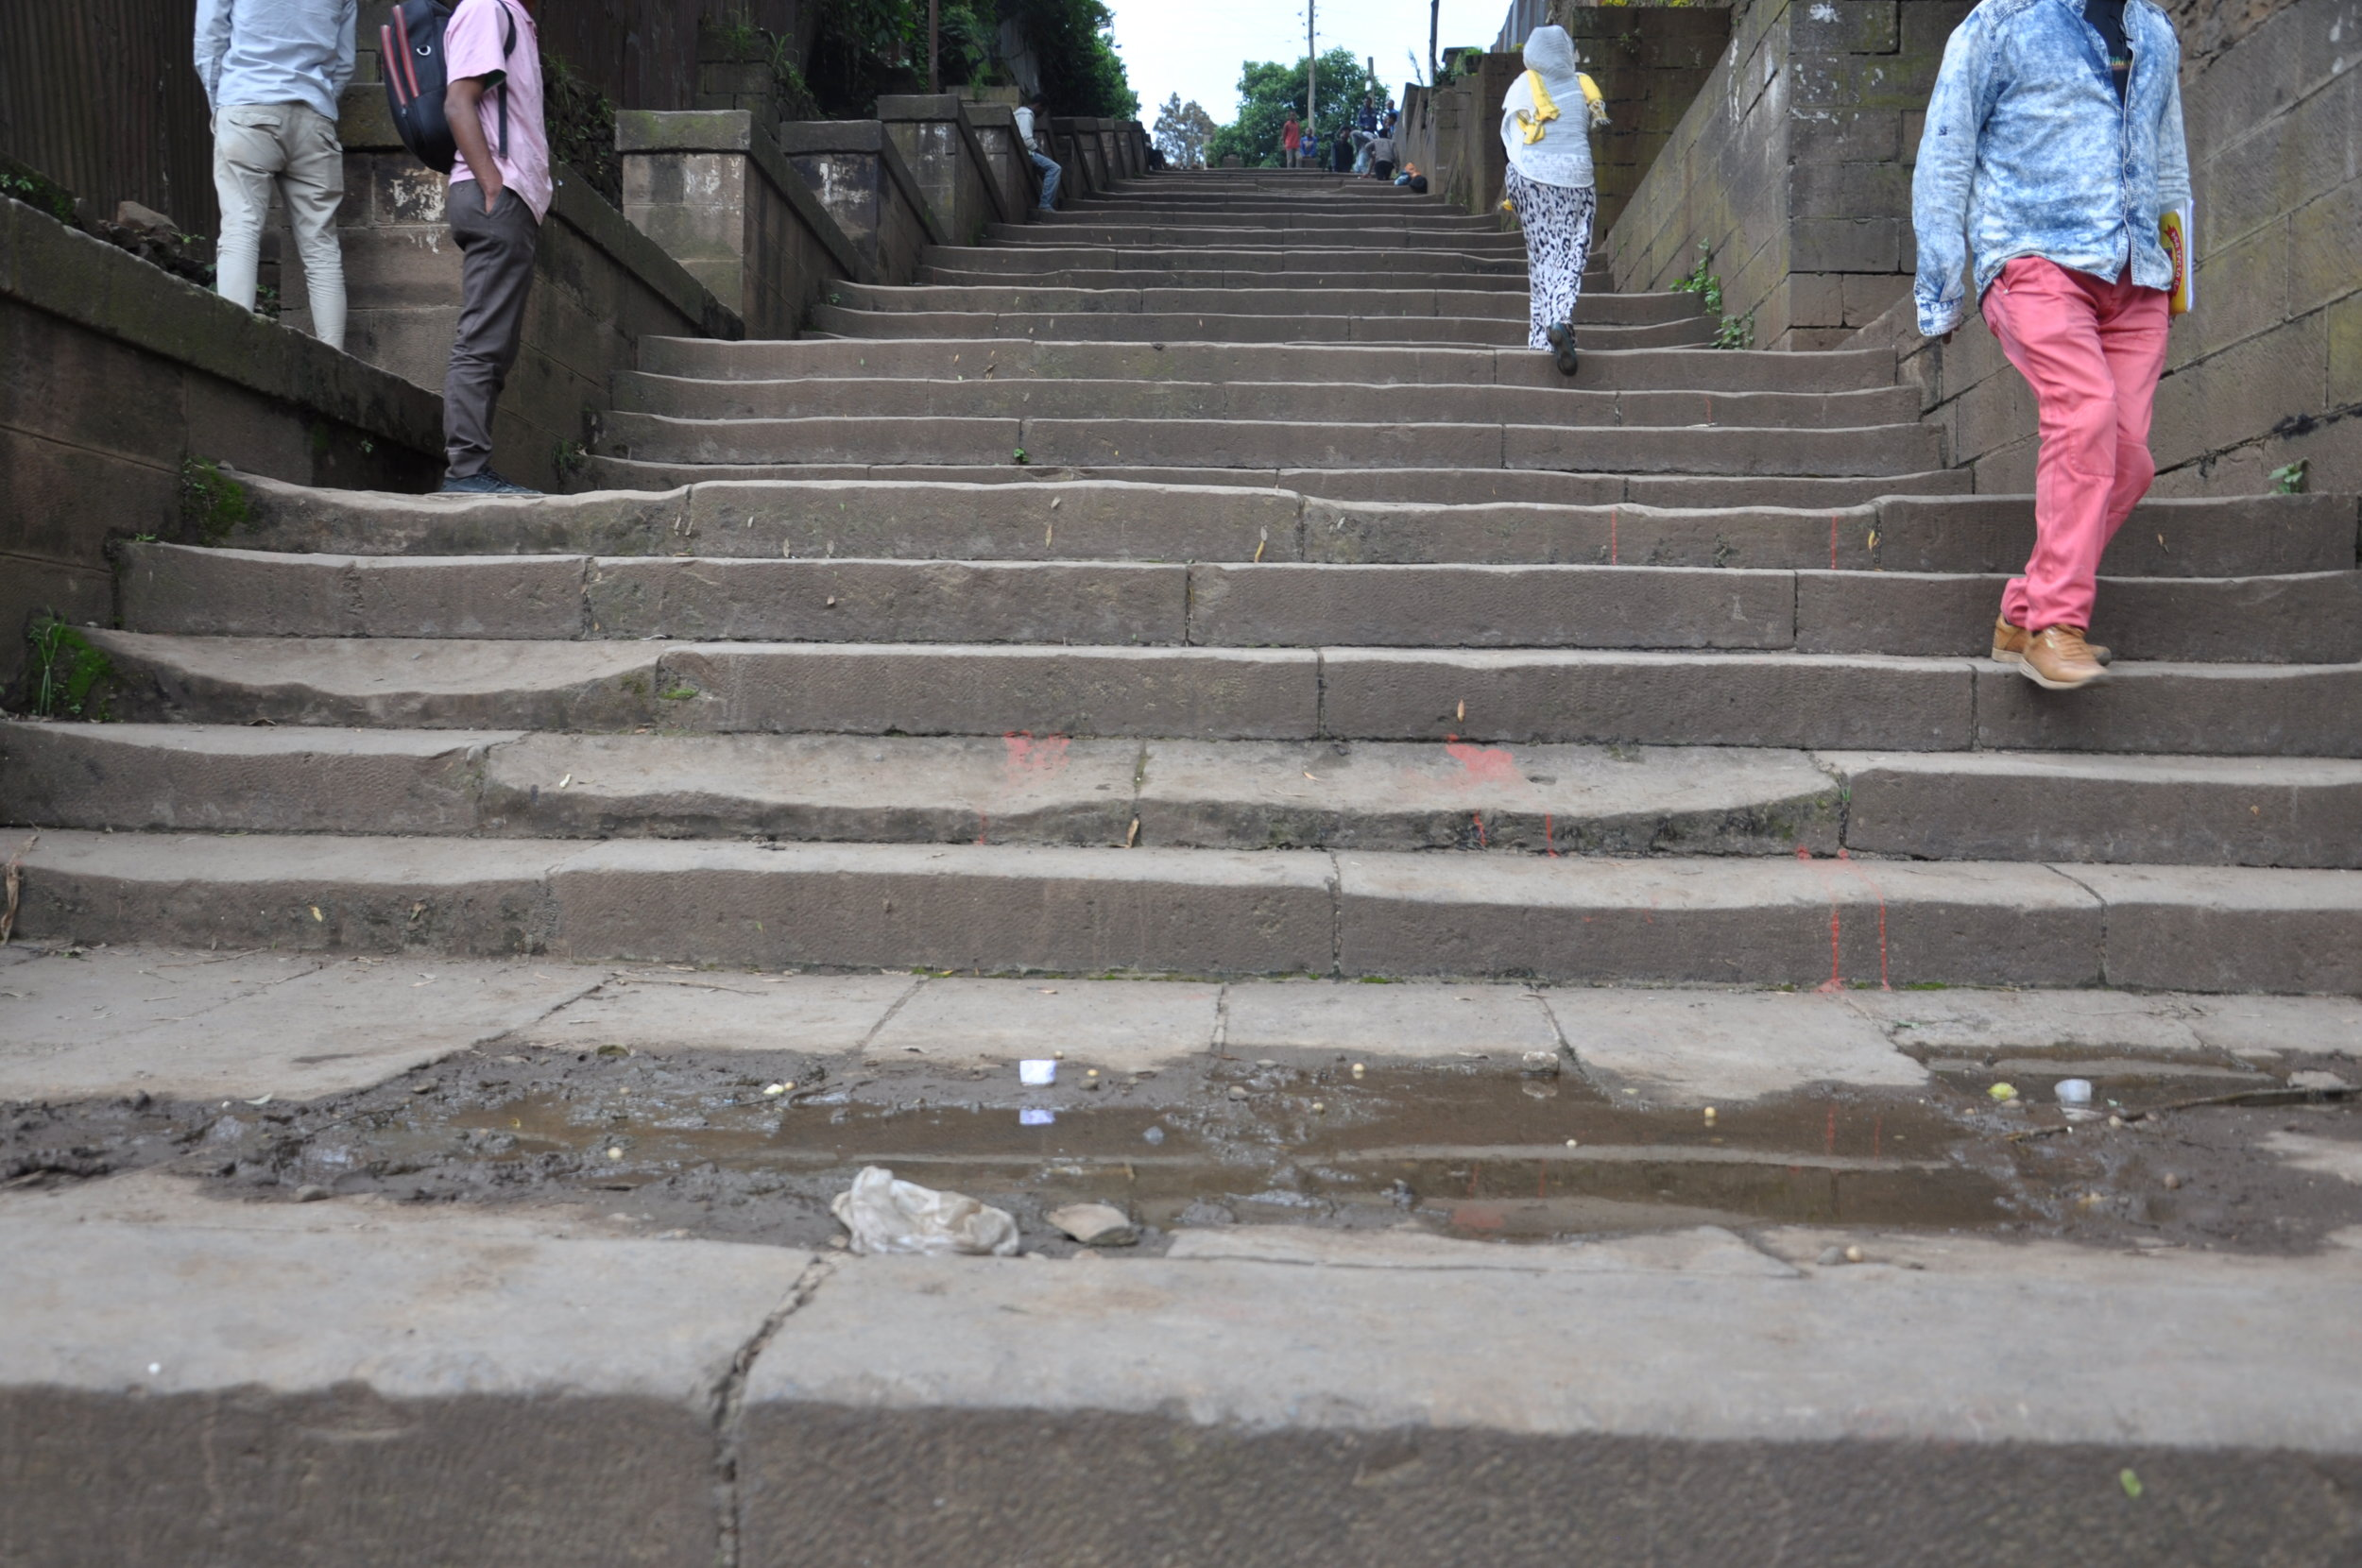 Dilapidated steps lead up to the school for the blind. Credit: UN-Habitat